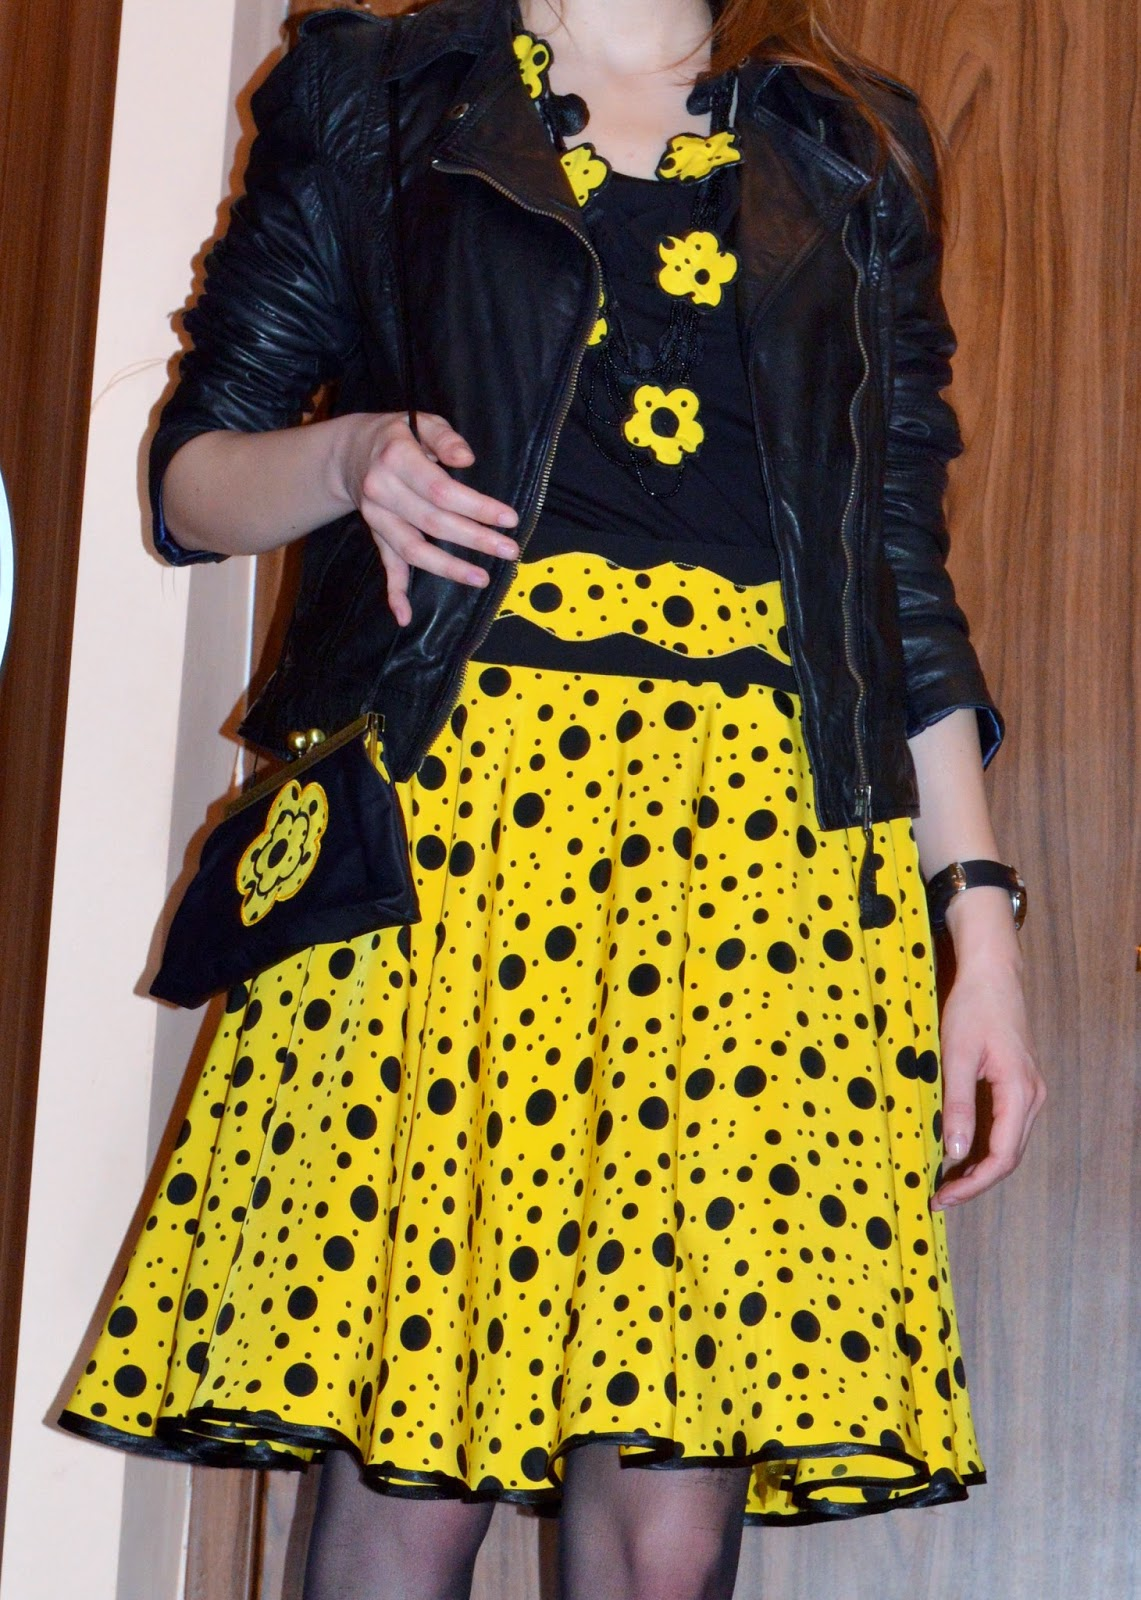 Yellow and black polka dots skirt with leather jacket